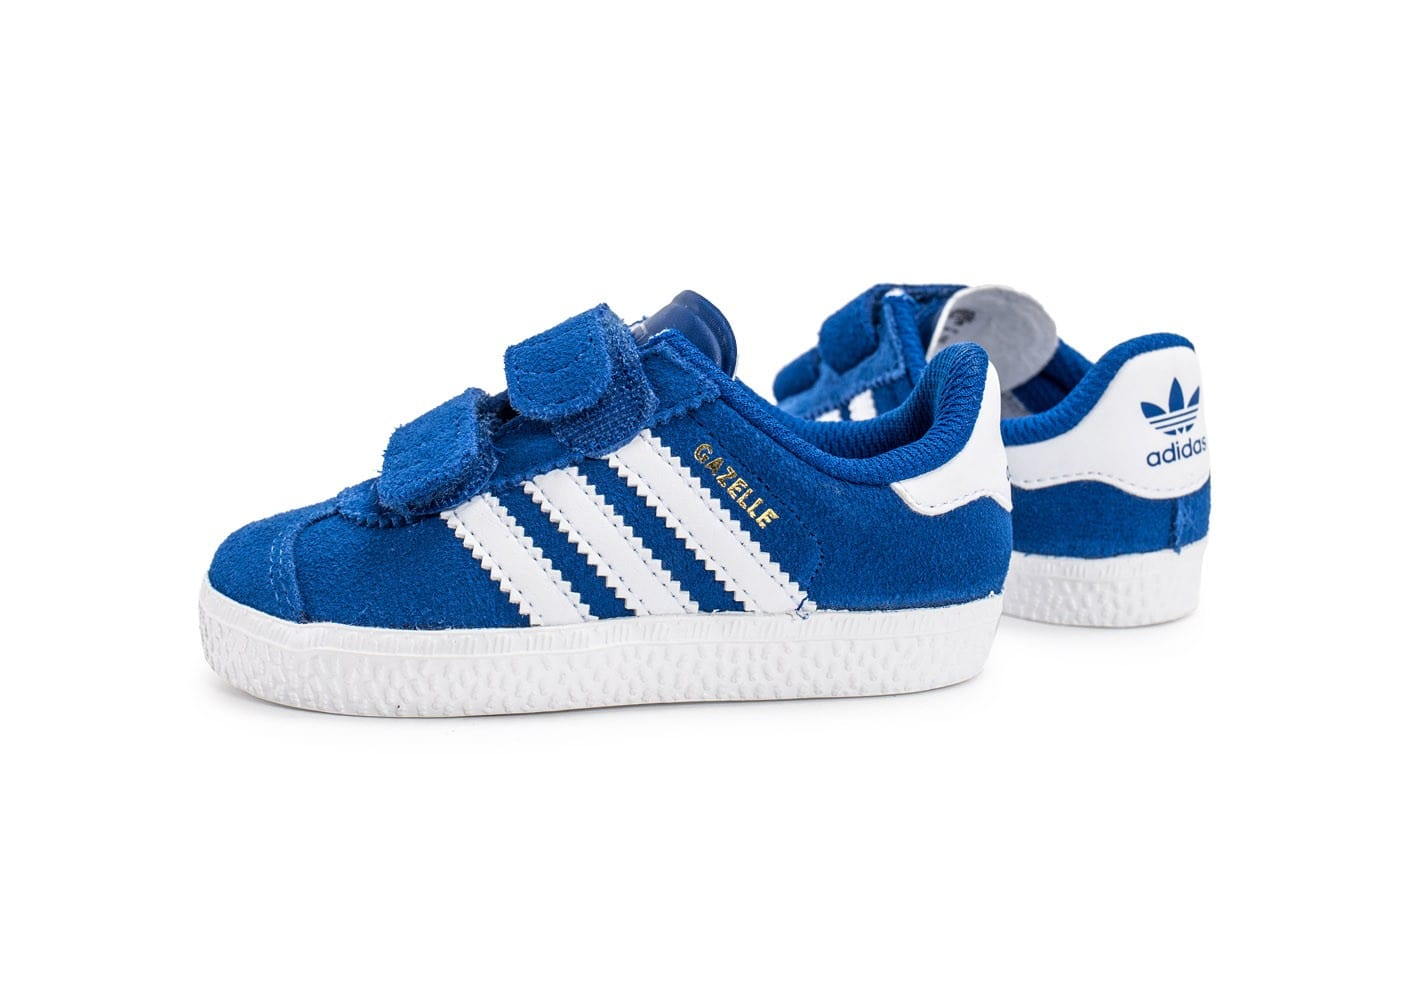 soldes adidas gazelle 2 cf b b bleu royal chaussures adidas chausport. Black Bedroom Furniture Sets. Home Design Ideas